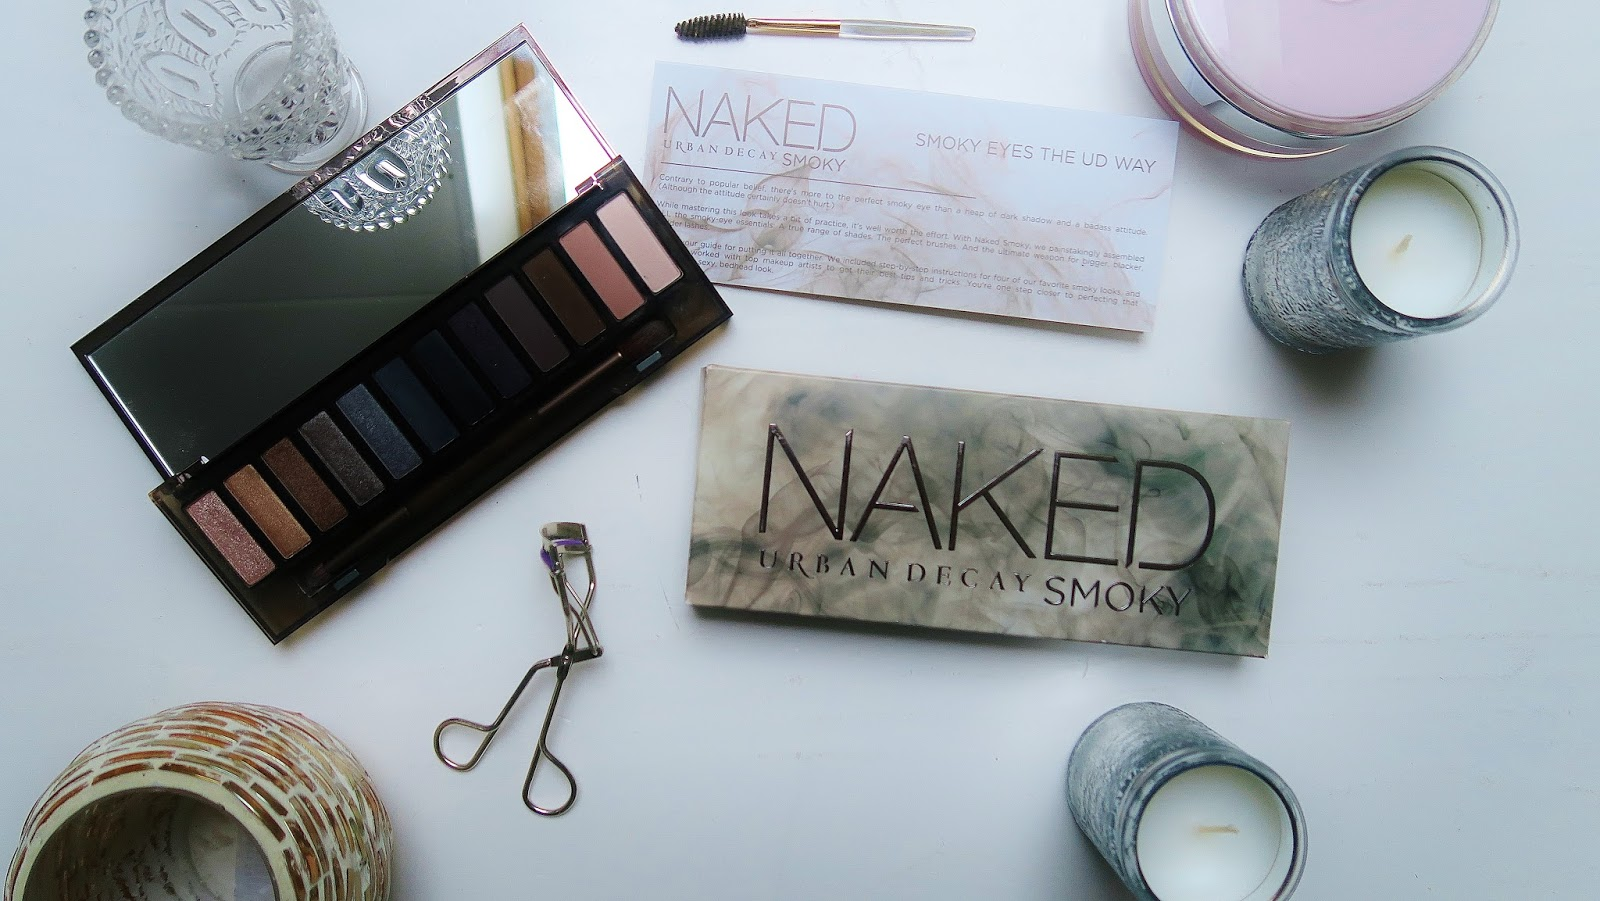 Urban Decay Naked Smoky Eyeshadow Palette Truly Mar Gasp That Is Quite A Long Name For Make Up Product But This Not Just Another